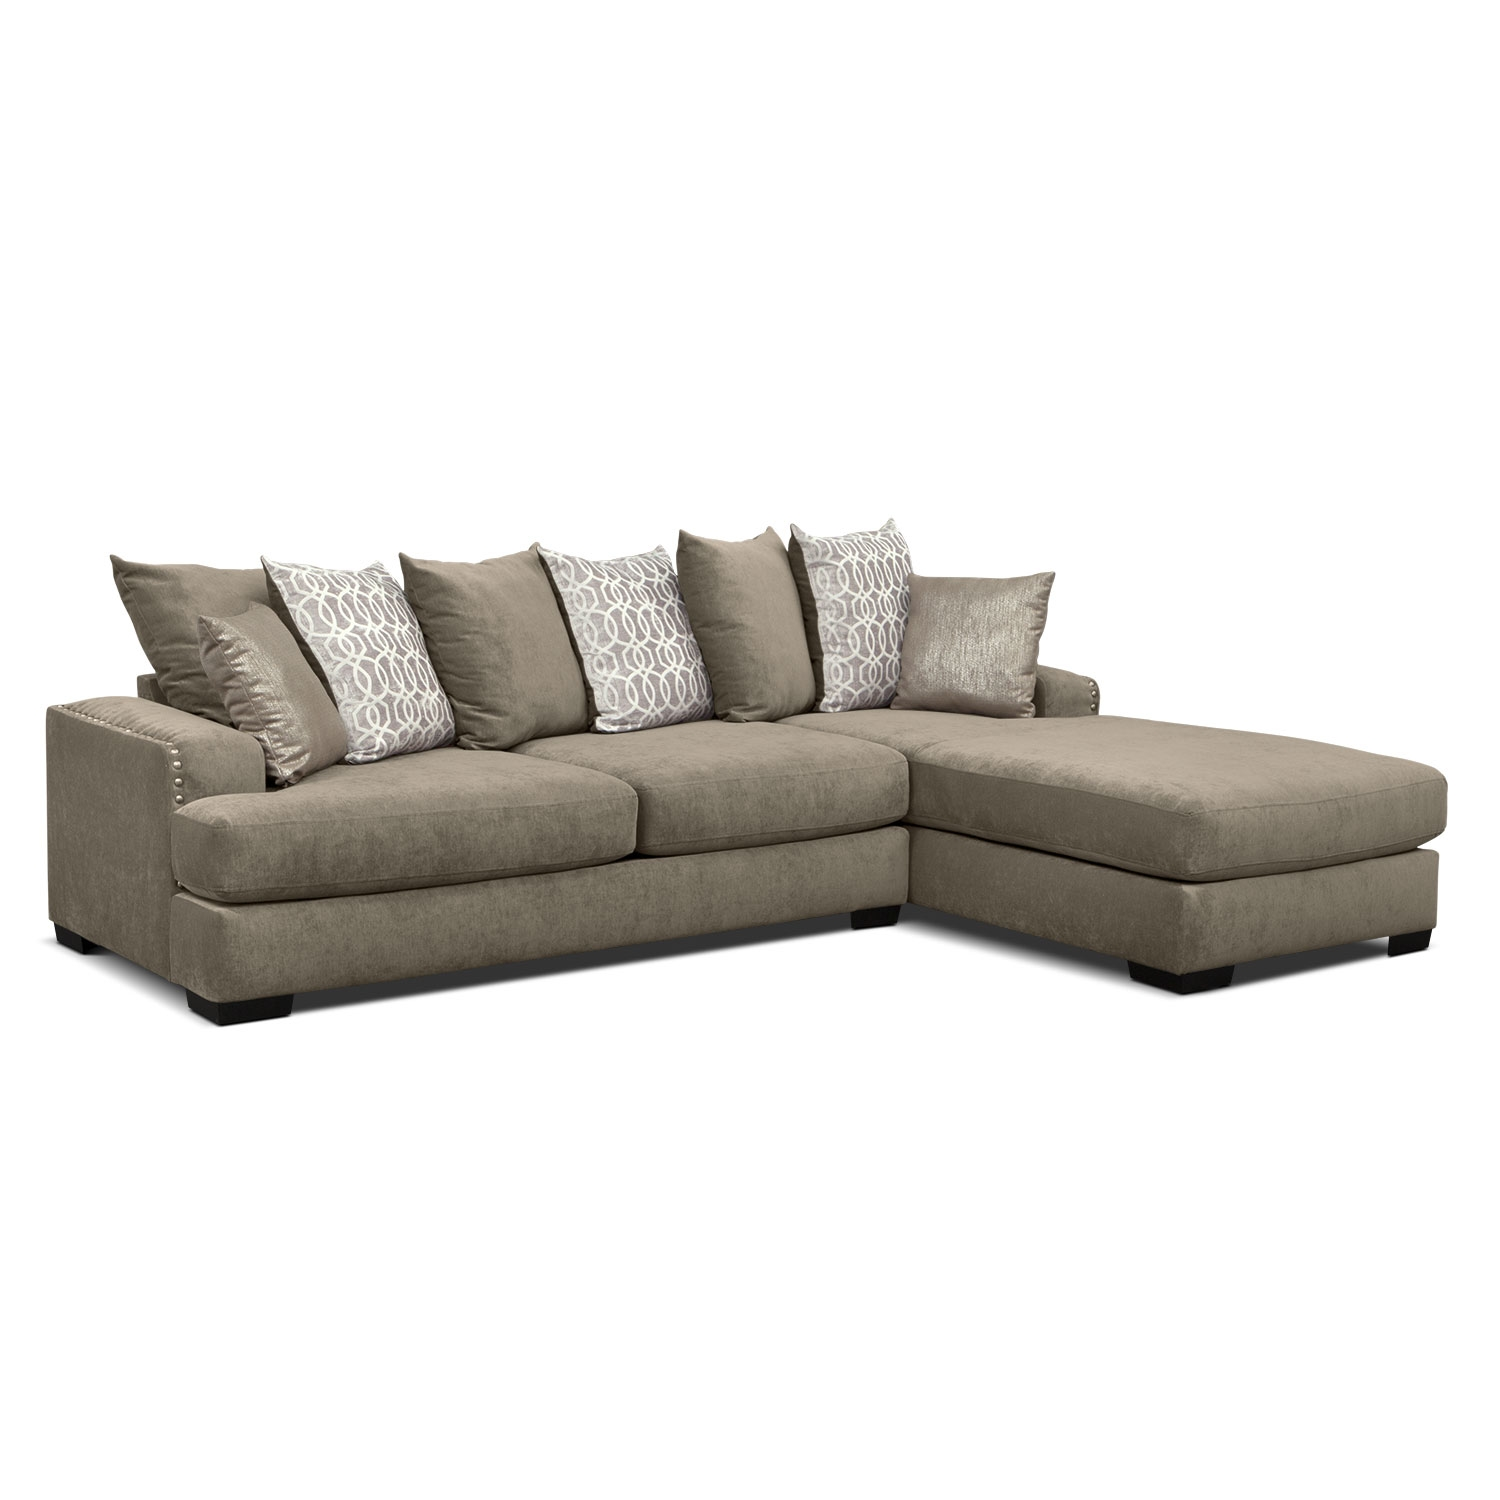 Tempo 2Piece Sectional with RightFacing Chaise